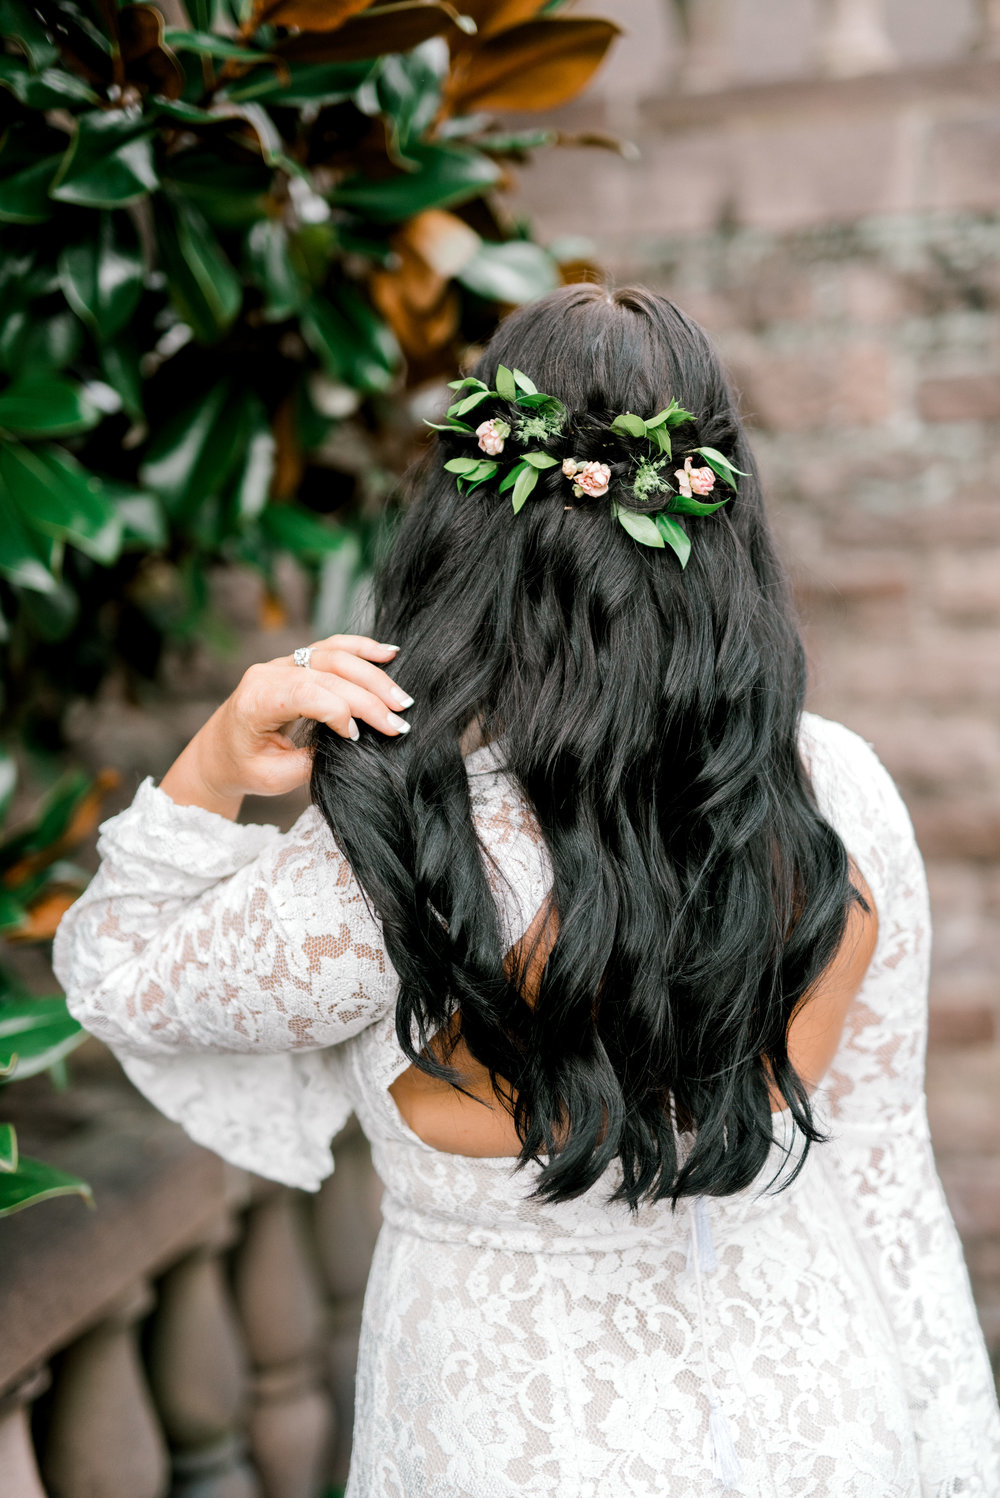 Flowers in her hair, it's like a hippy fairytale dream come true from this bright boho chic Tyler Gardens wedding in Bucks County